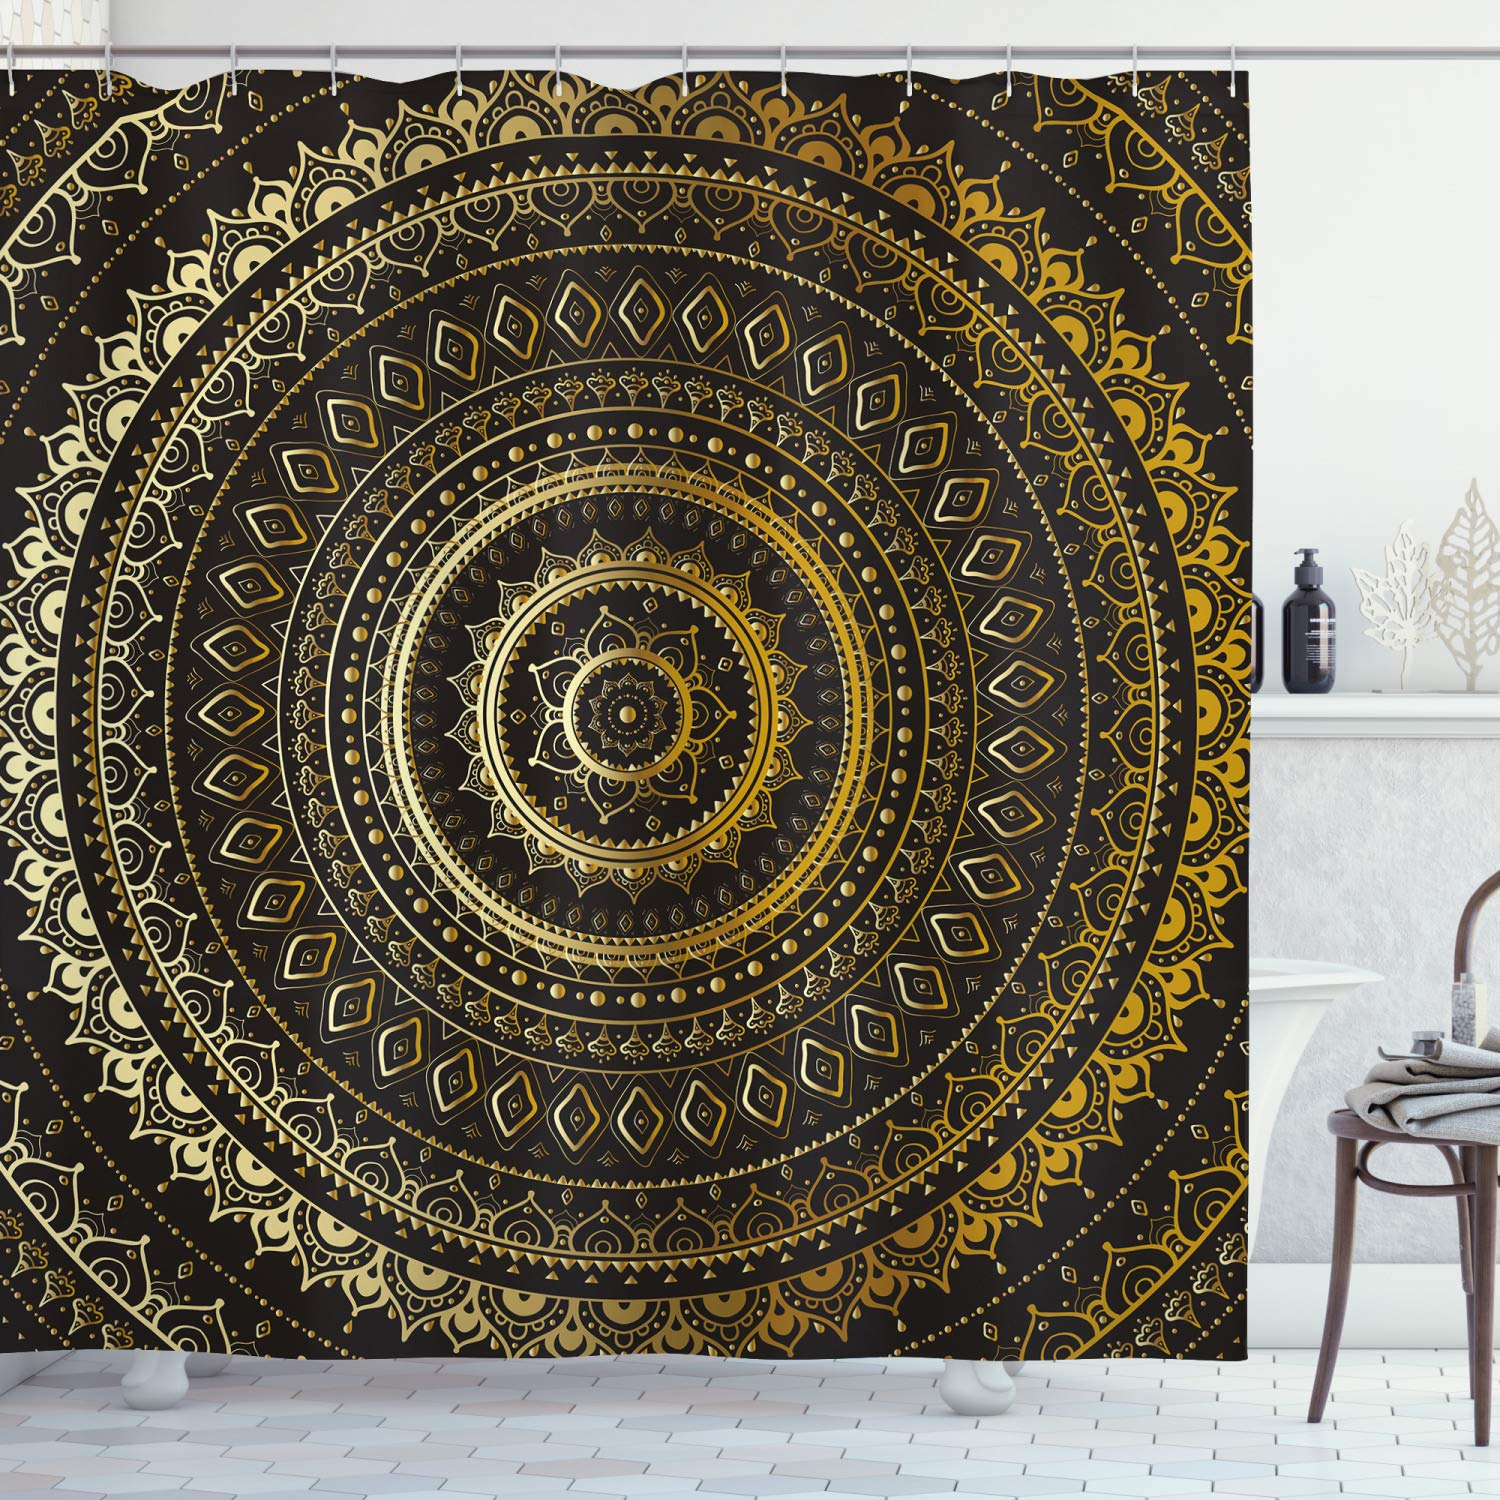 Ambesonne Gold Mandala Shower Curtain by, Indian Decorative Motif Symbol of Universe in Balance Oriental Flora, Fabric Bathroom Decor Set with Hooks, 70 Inches, Gold Black Yellow